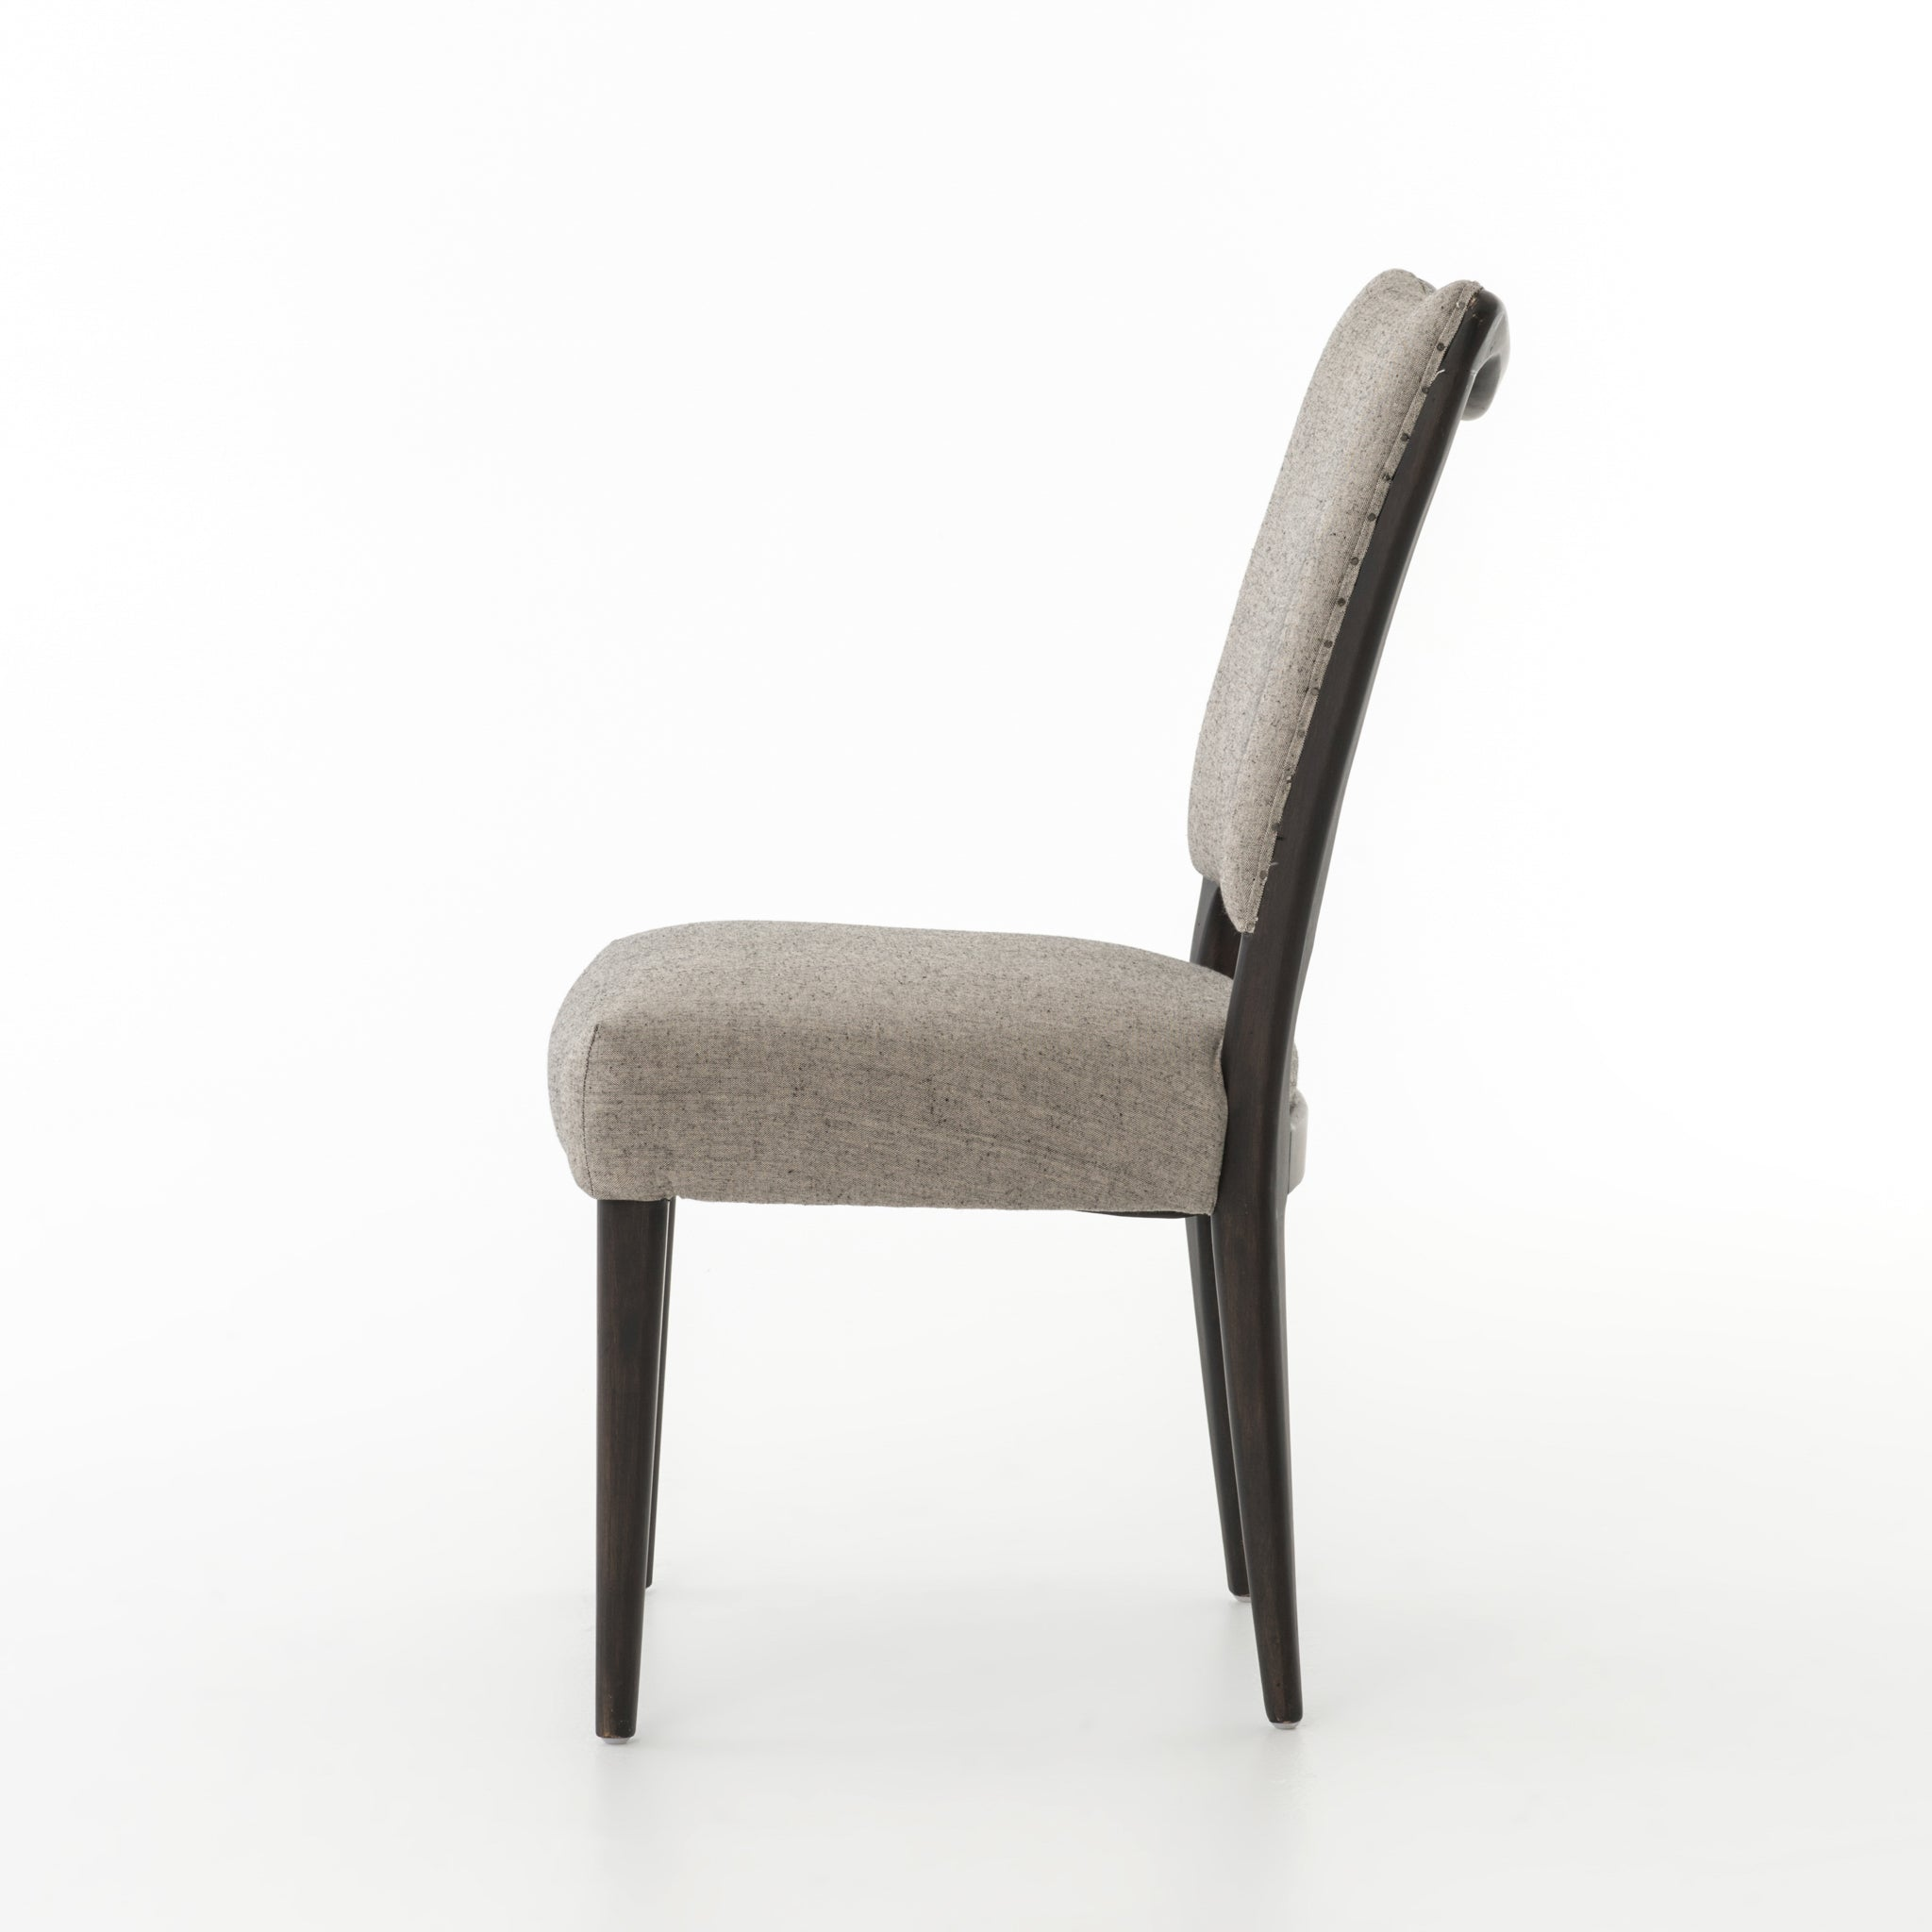 Lennox Dining Chair-Ives White Grey